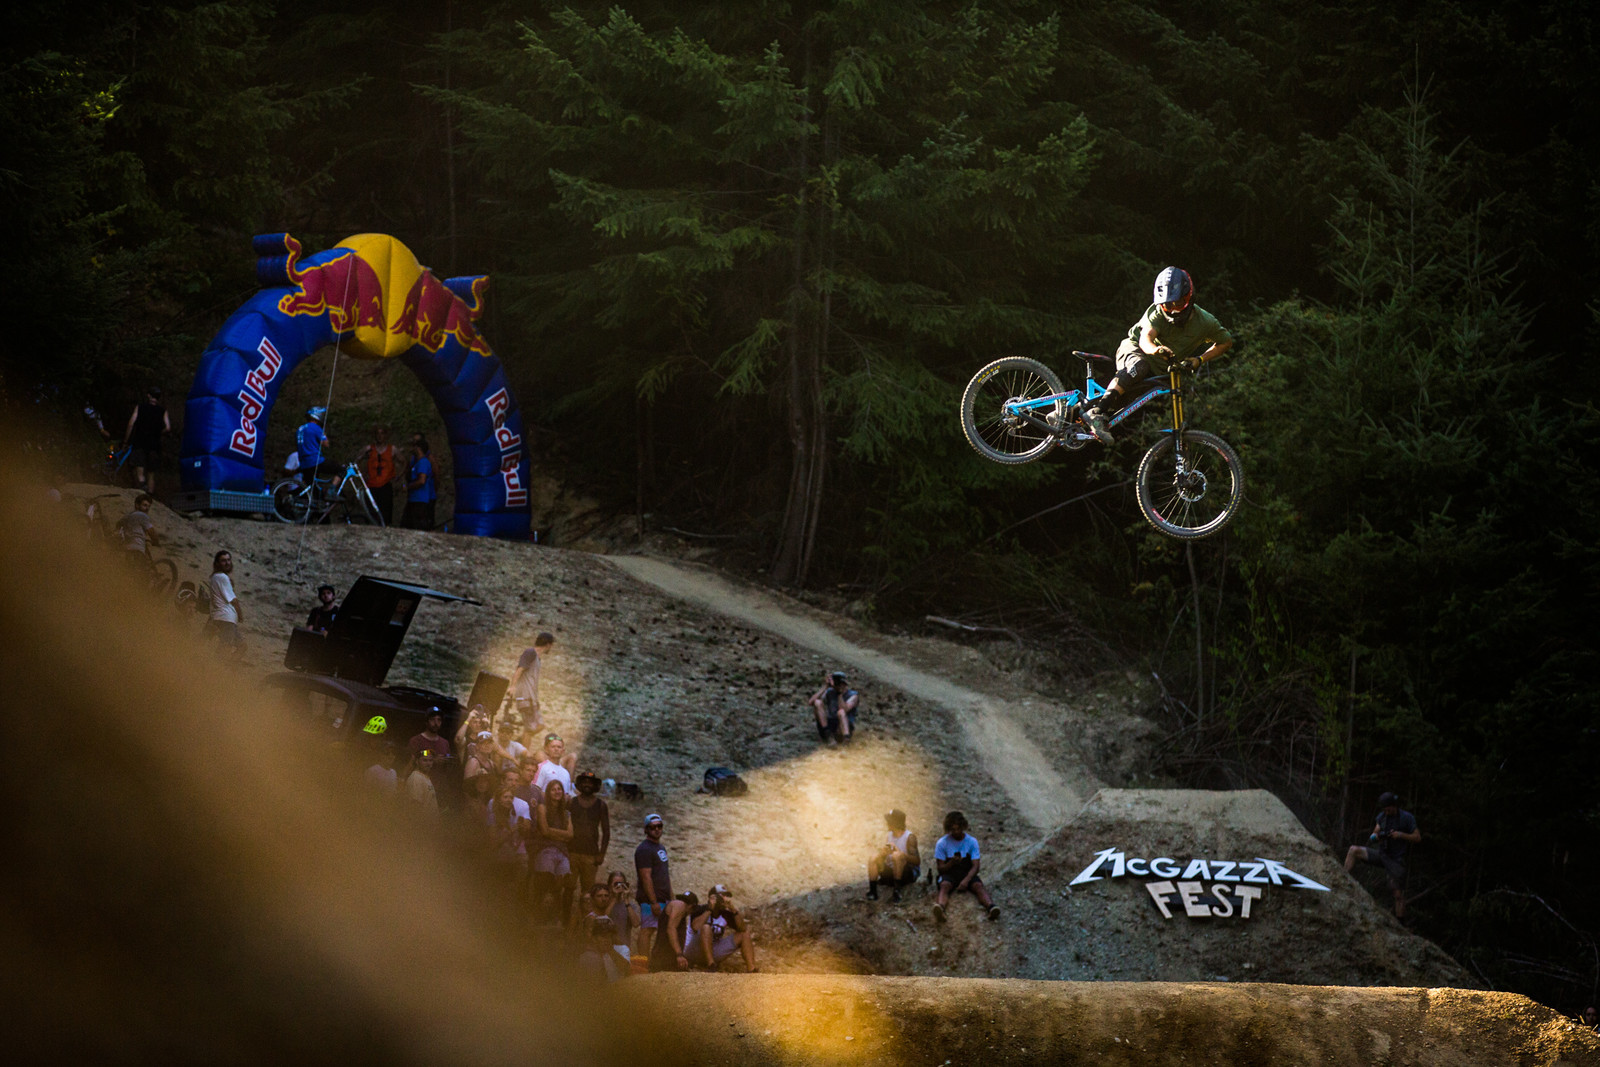 Laurie Greenland - McGazza Fest Dream Track Jam - Mountain Biking Pictures - Vital MTB